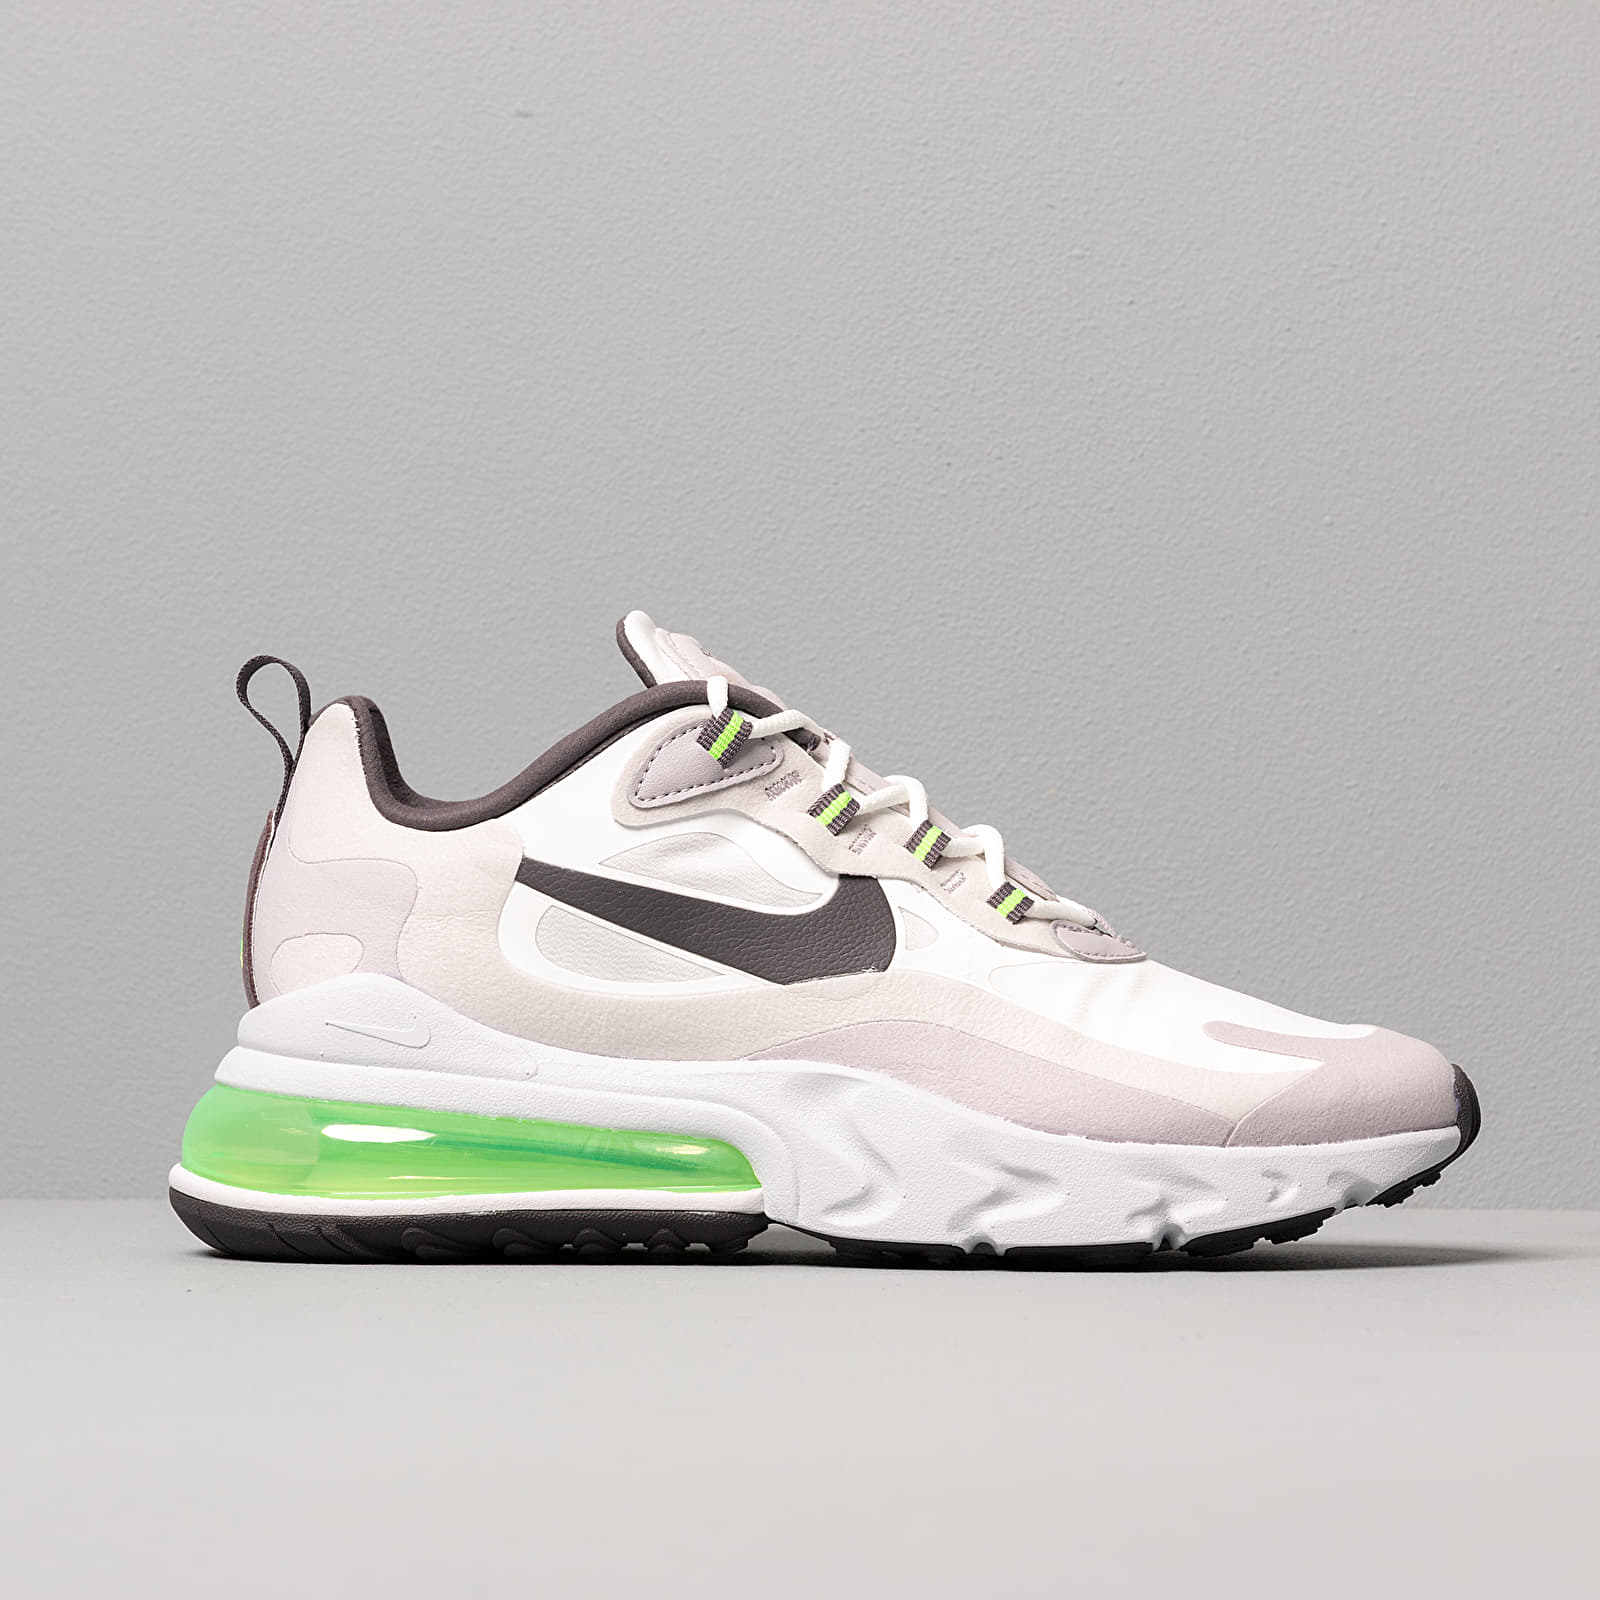 Nike Air Max 270 React Summit White Electric Green Vast Grey | Footshop